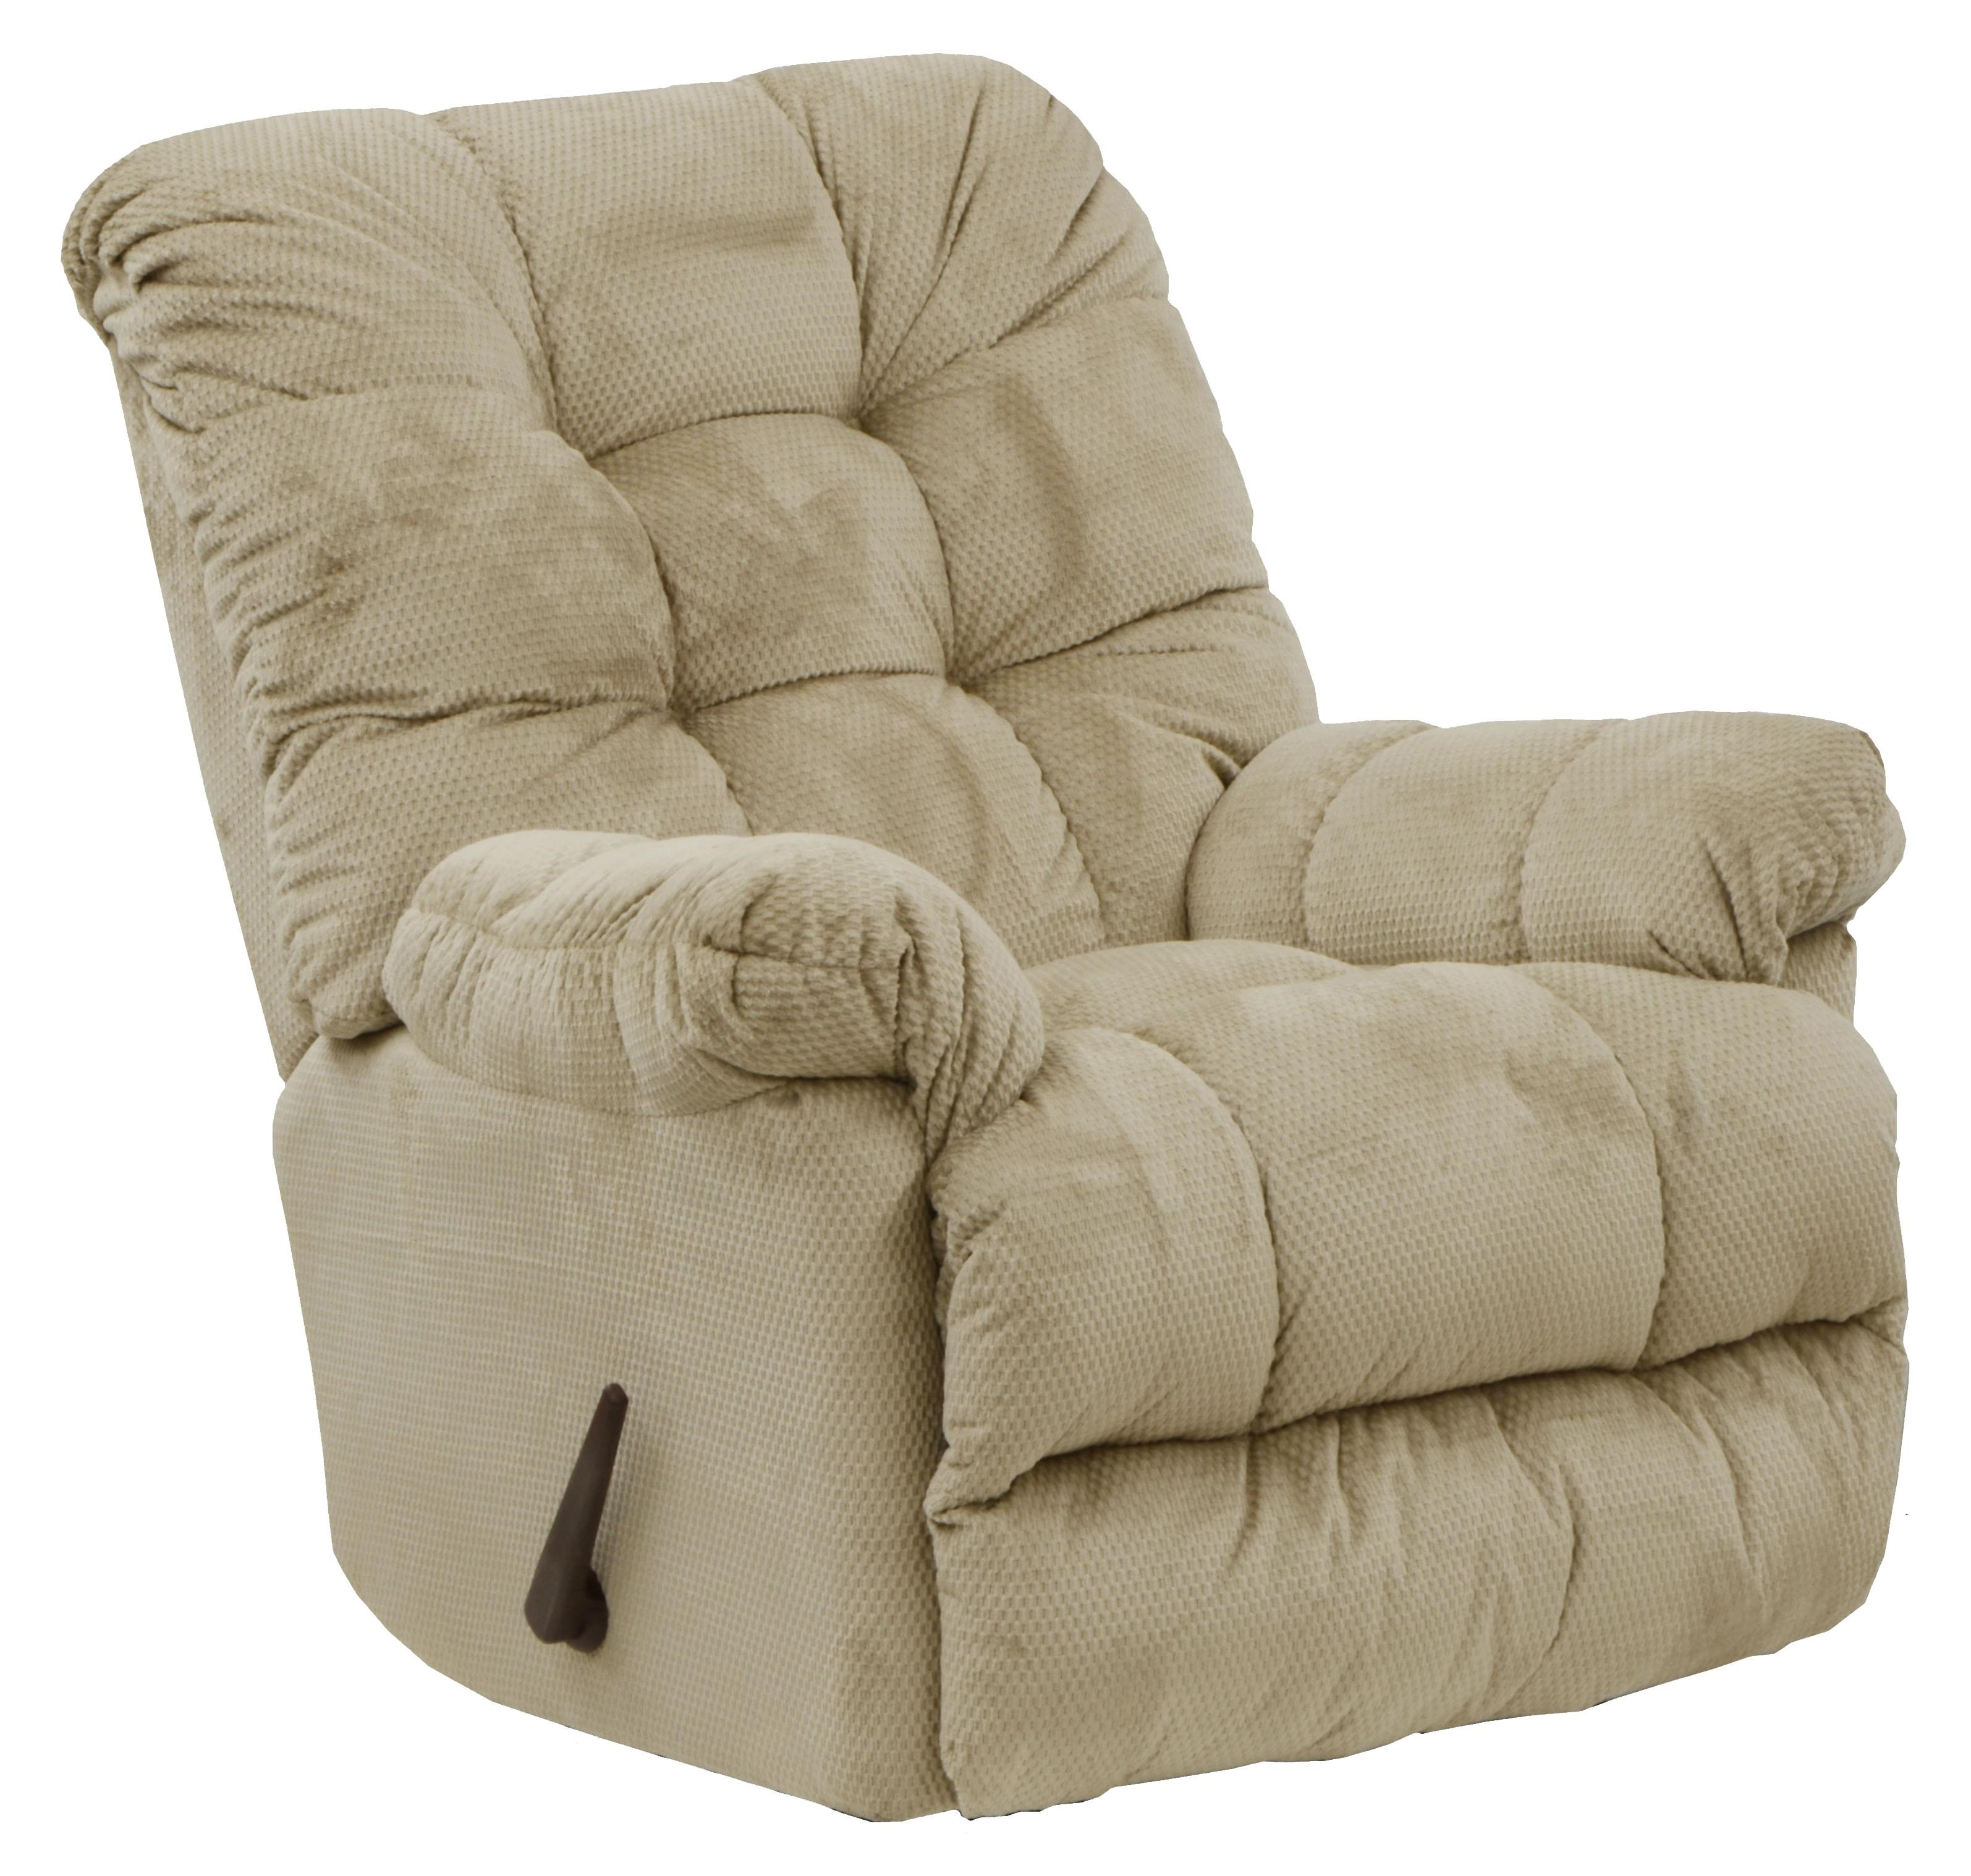 Catnapper Motion Chairs And Recliners Nettles Rocker Recliner With Heat And  Massage